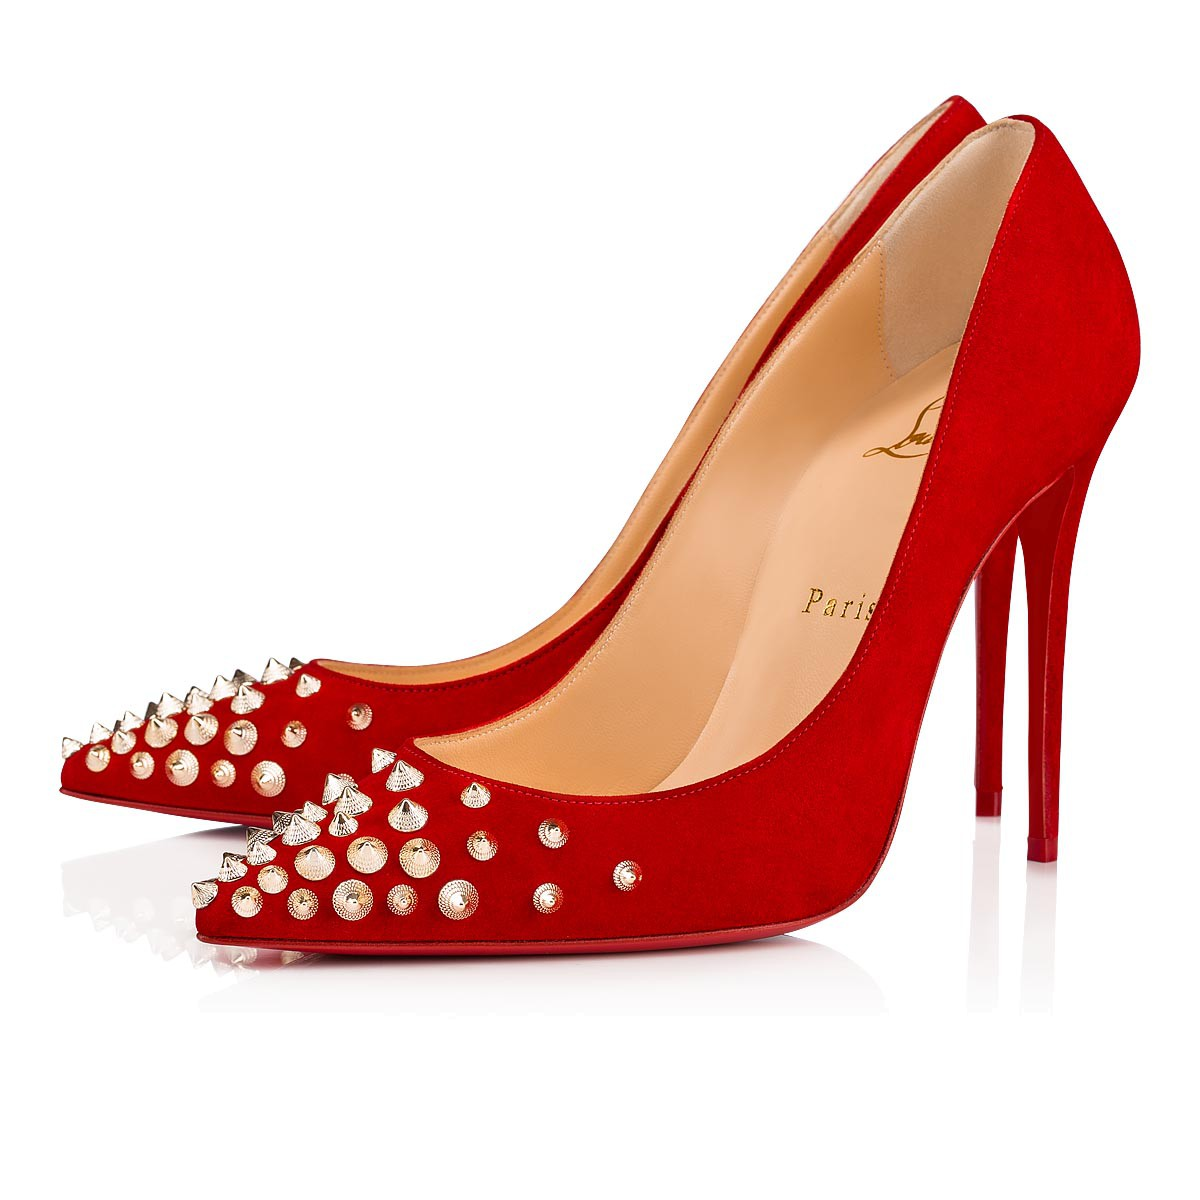 Women Shoes - Spikyshell Veau Velours - Christian Louboutin